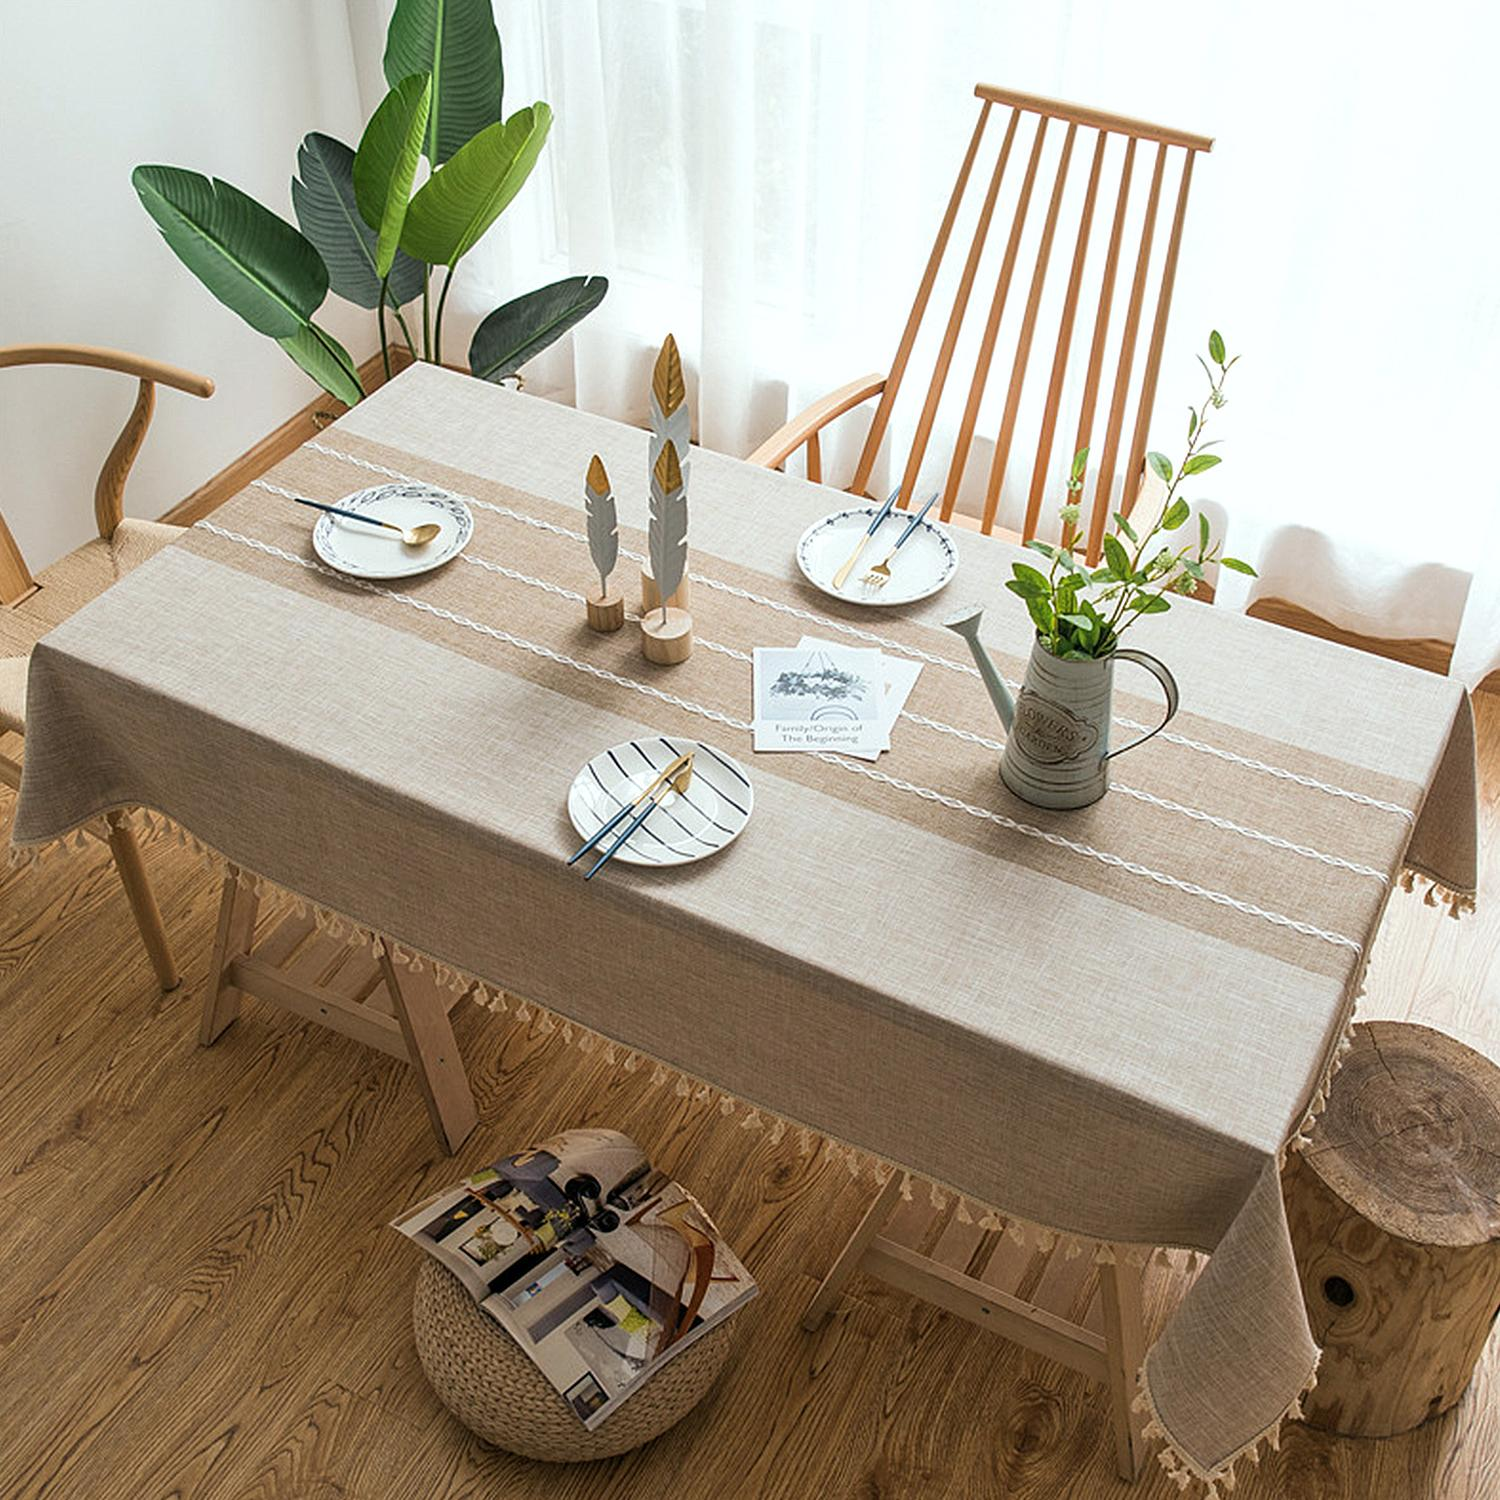 New Japan Style Linen Cotton Tassel Table Cloth Rectangular Lace Edge Tablecloth For Wedding Dustproof Table Covers Home Textile Y200421